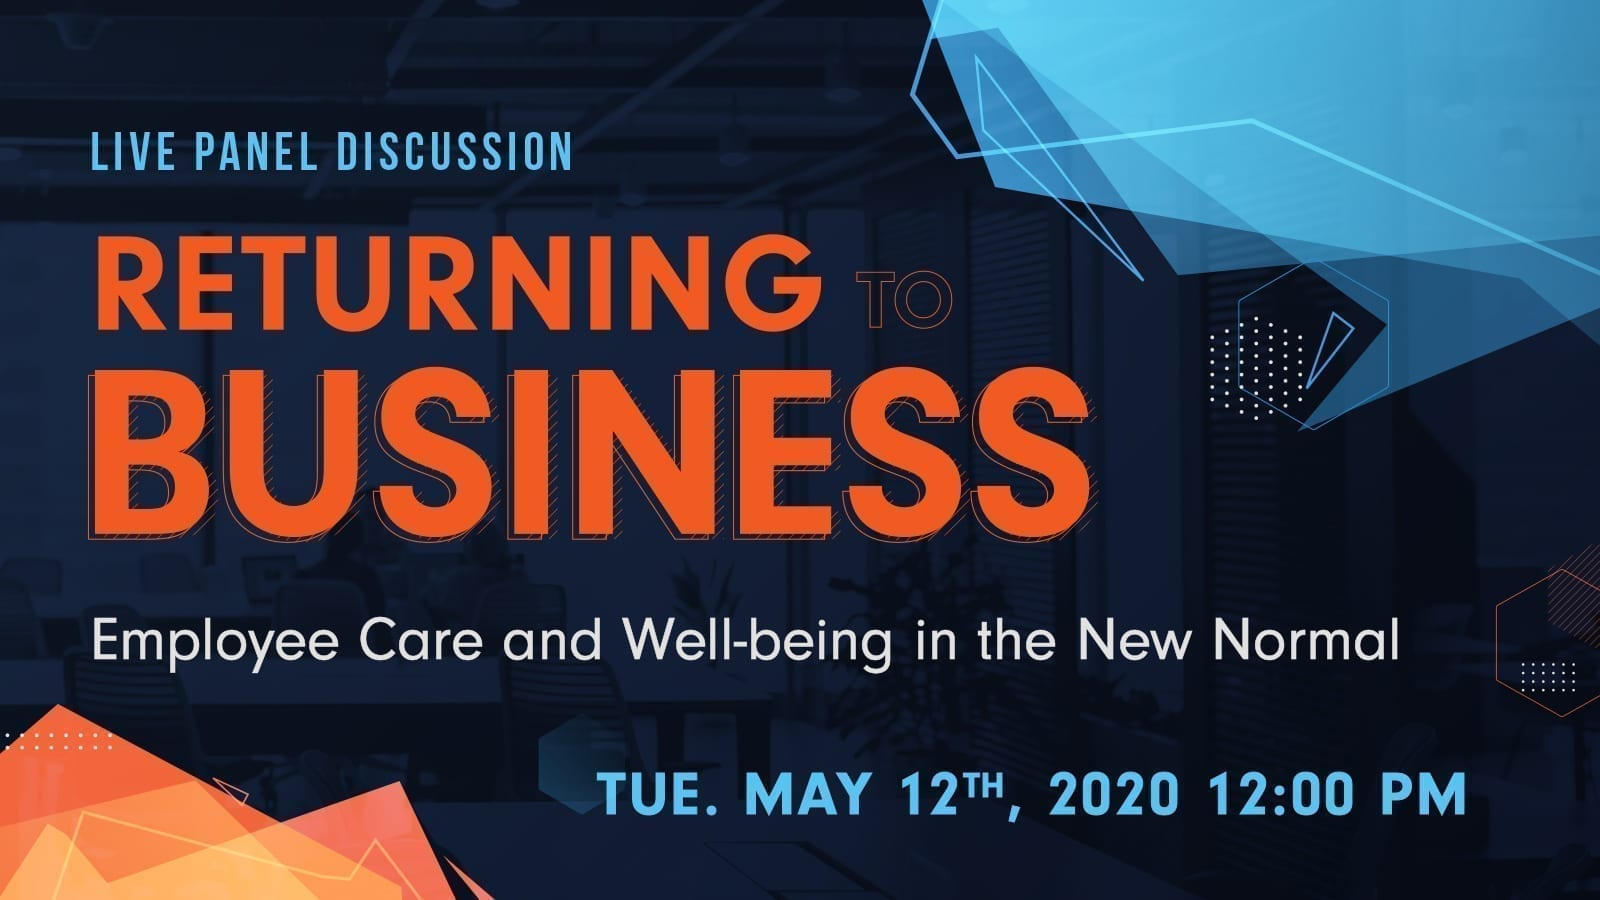 Edge Schedules Free Webinar Addressing Employee Care And Well-Being In New Normal For May 12